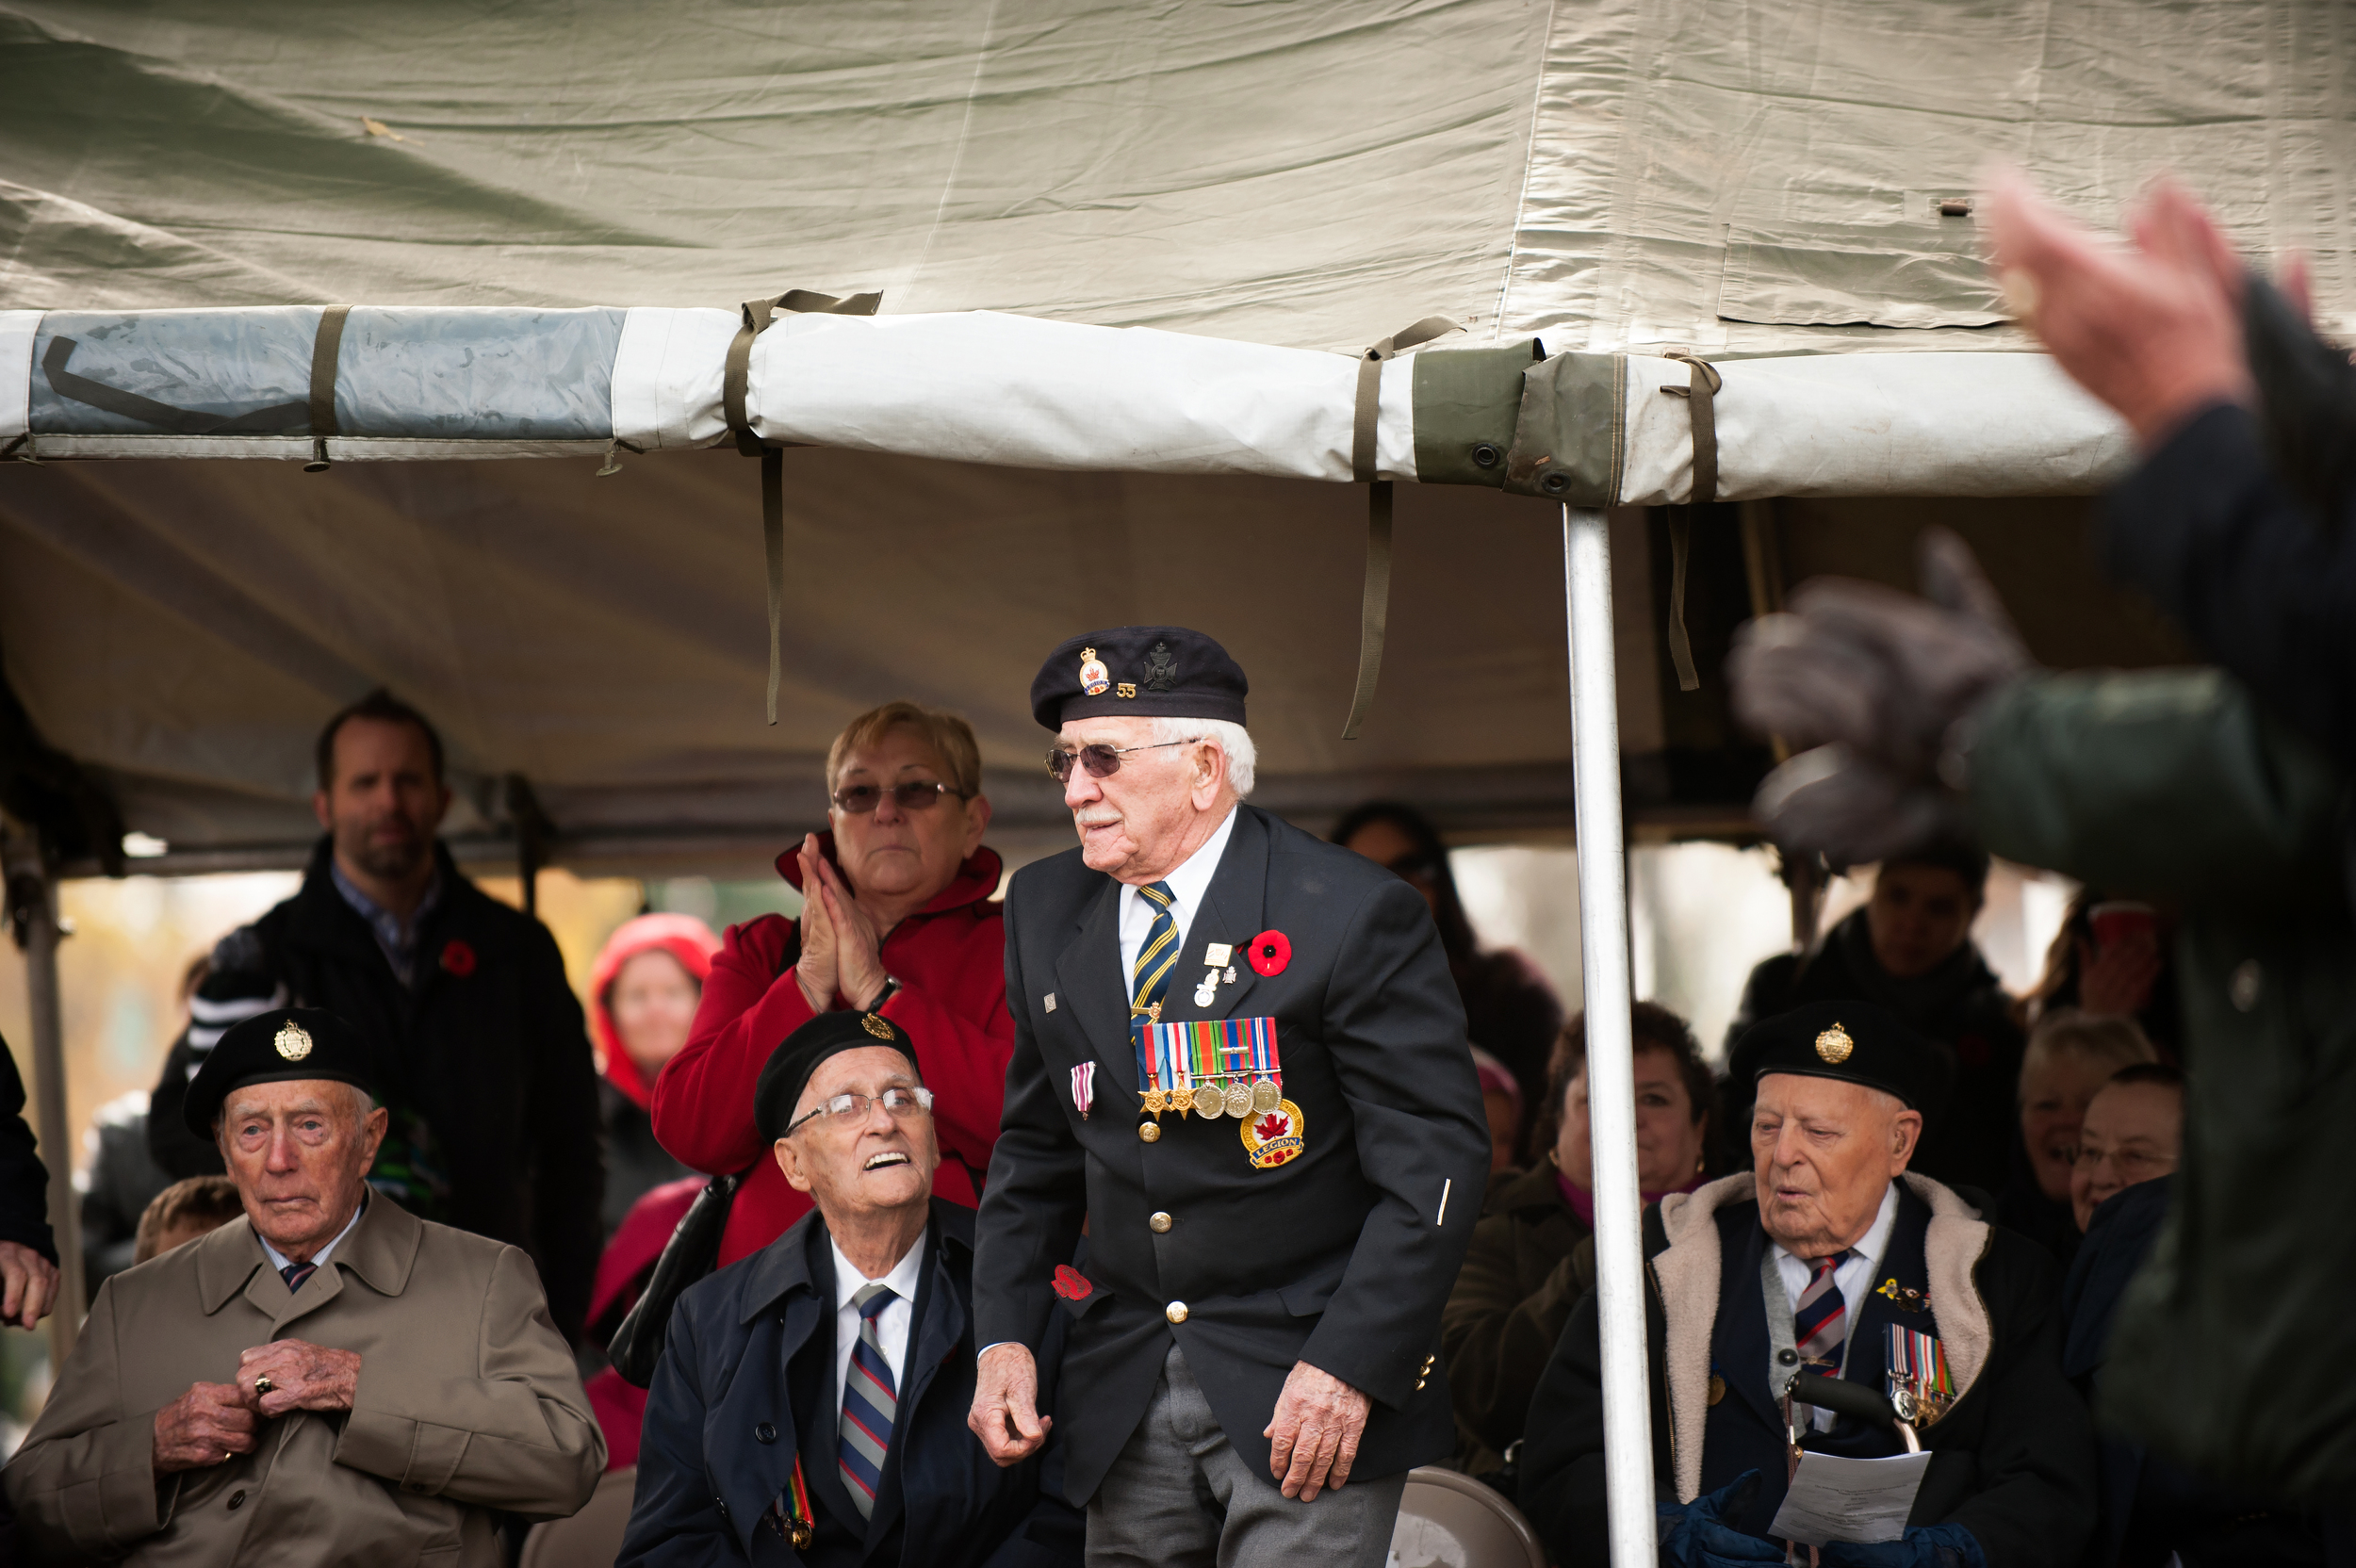 Ken, walking up to receive the Legion Of Honour Medal.